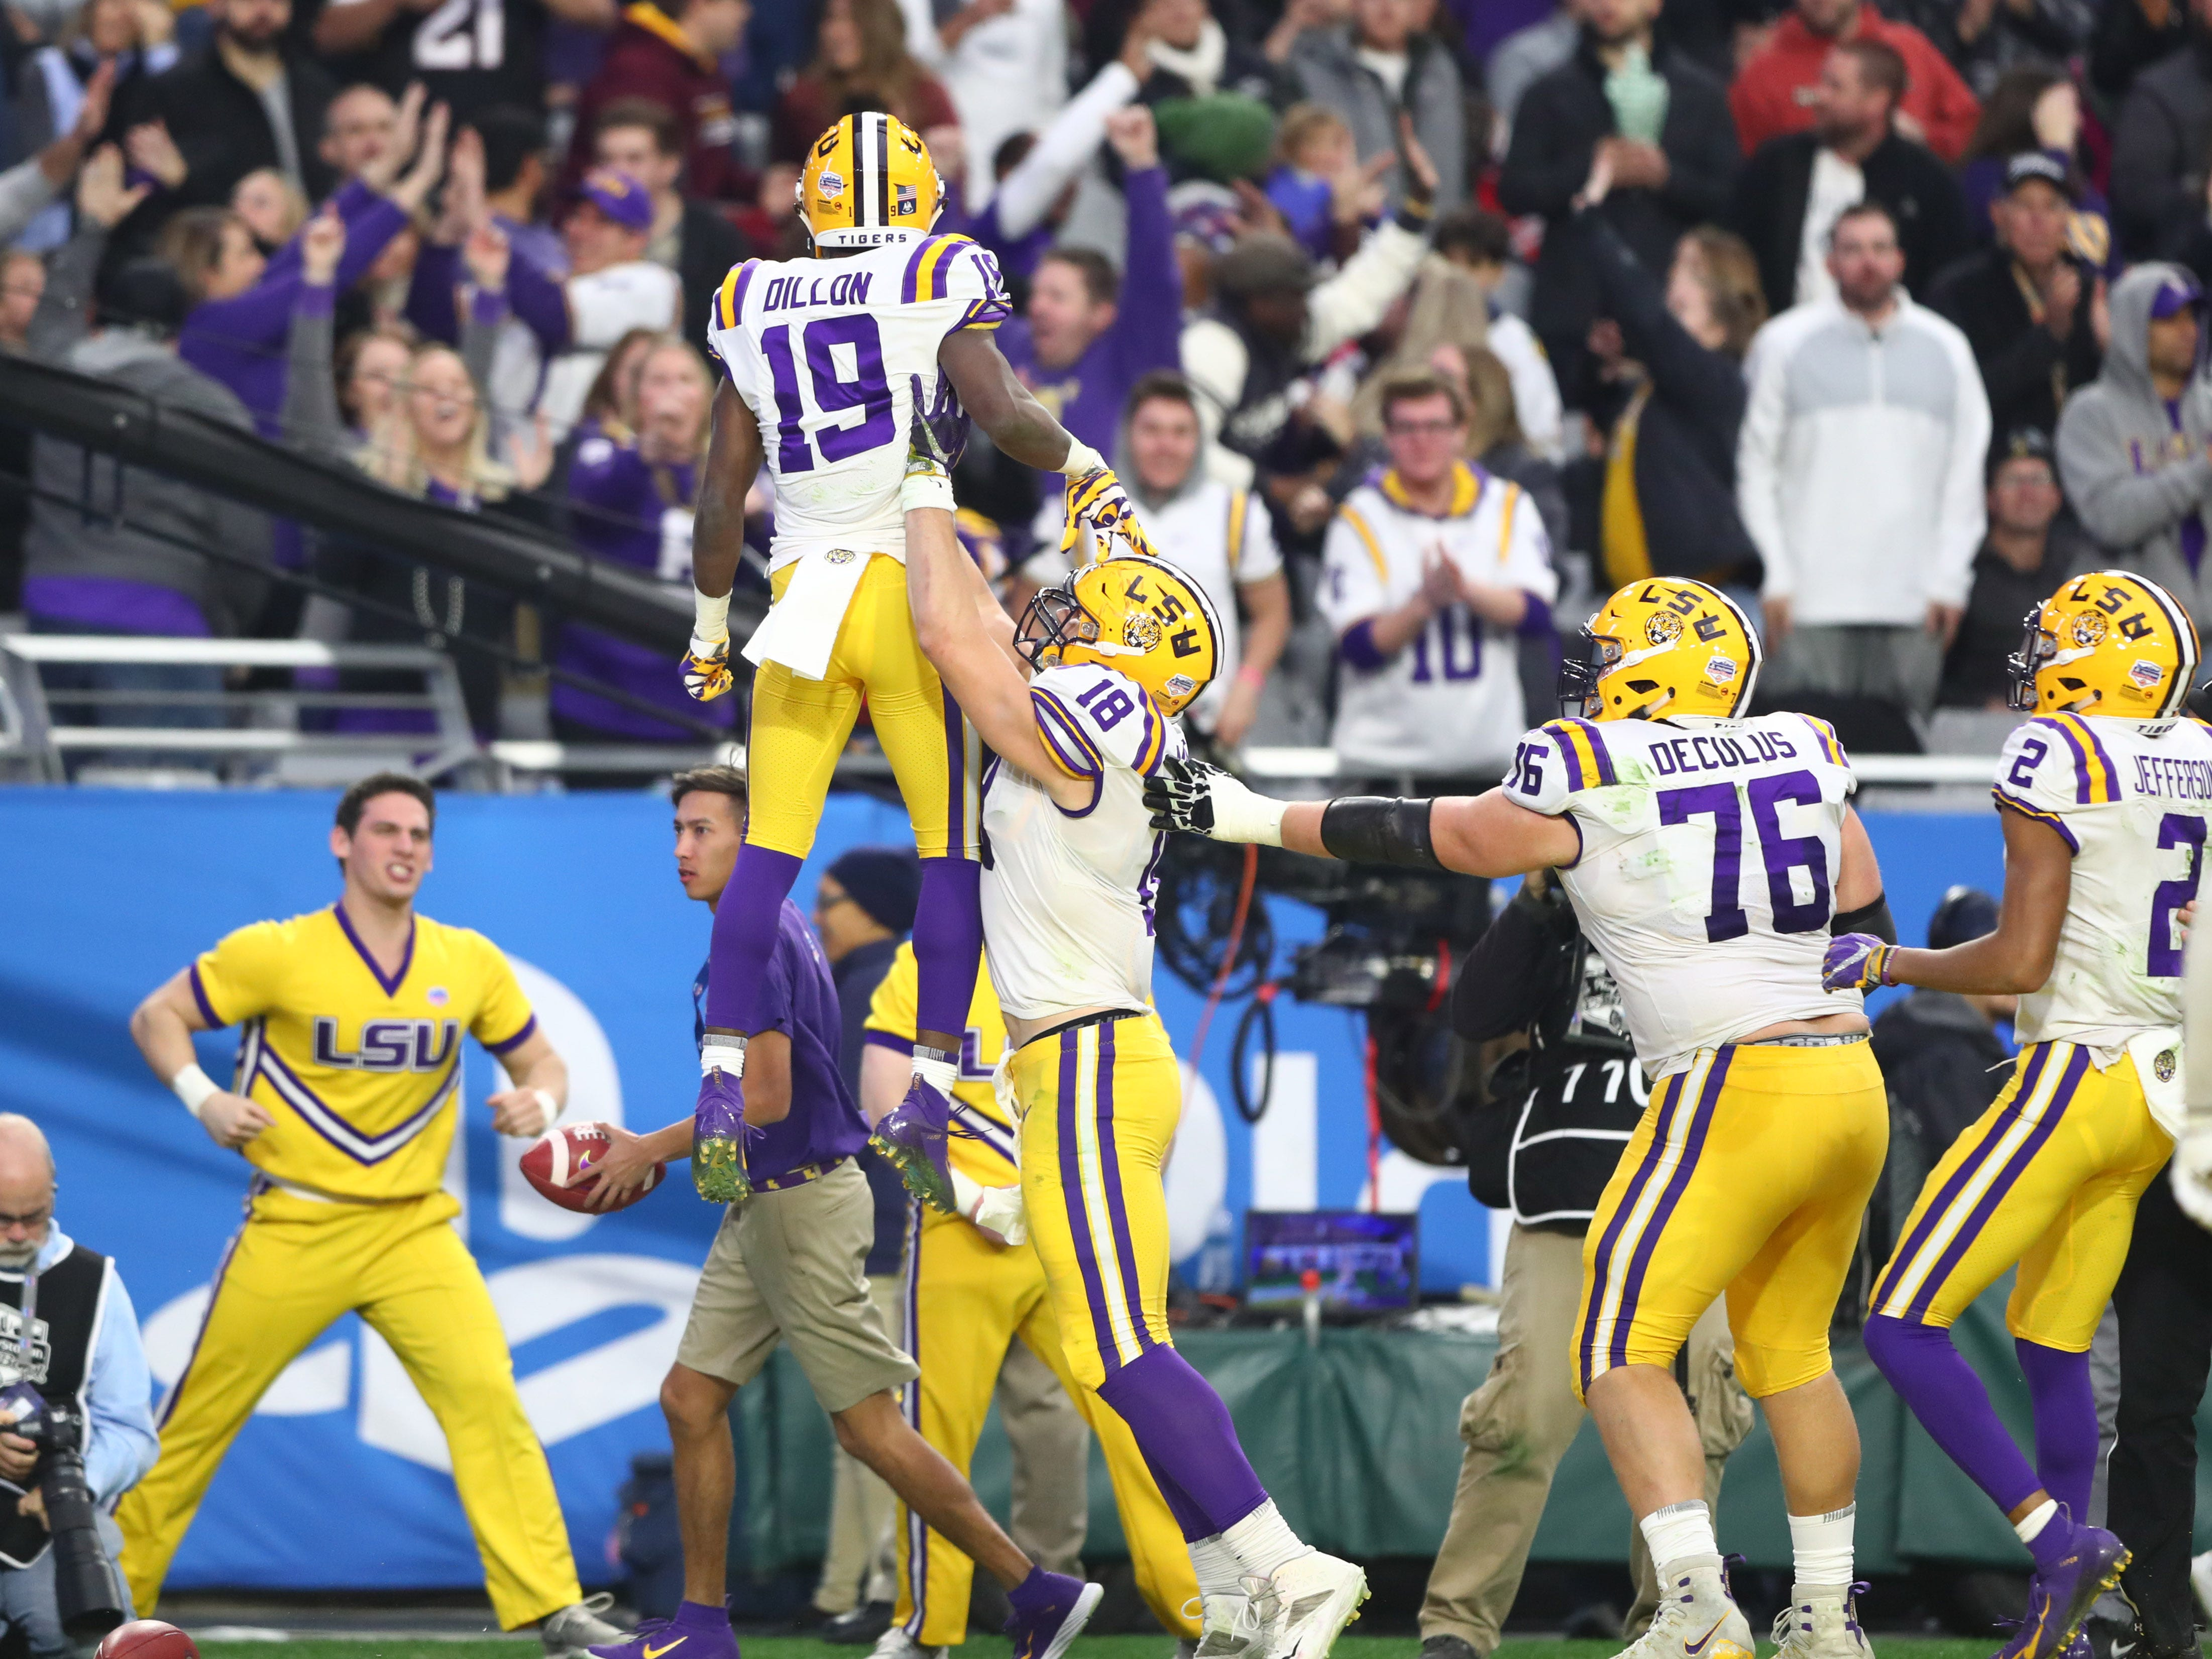 LSU wide receiver Derrick Dillon celebrates after catching a touchdown pass against Central Florida in the 2019 Fiesta Bowl.